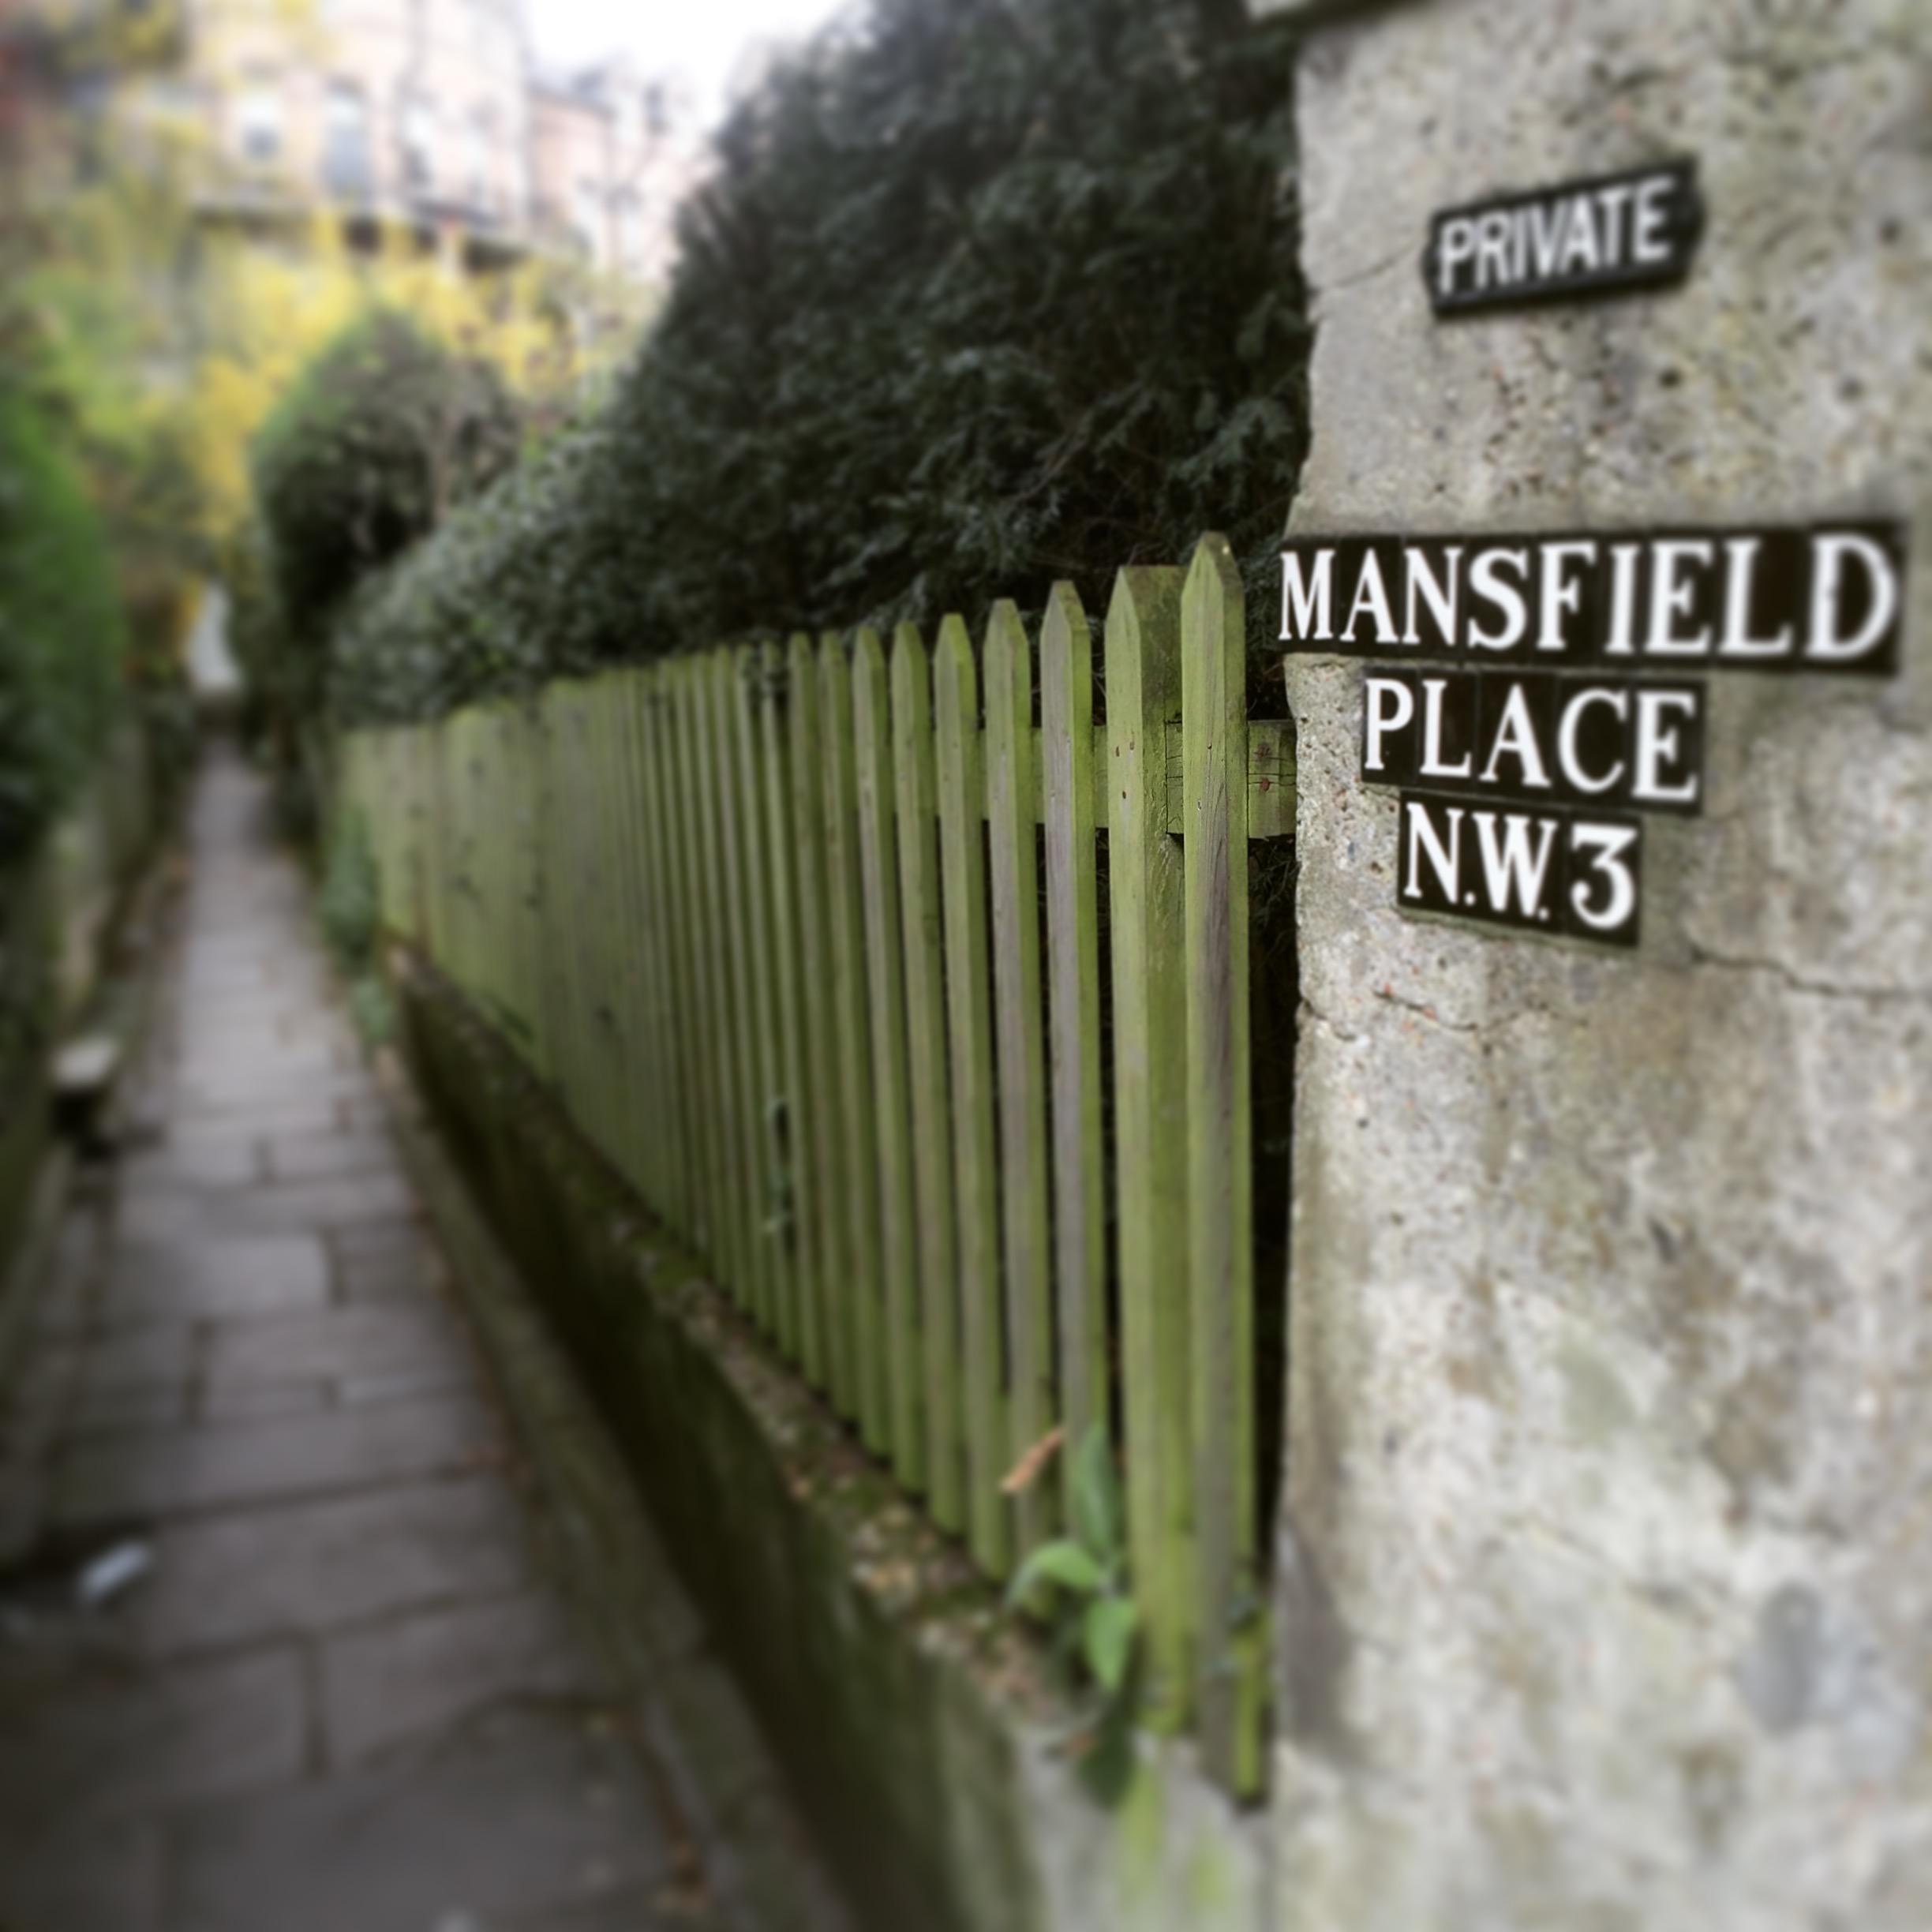 Mansfield Place